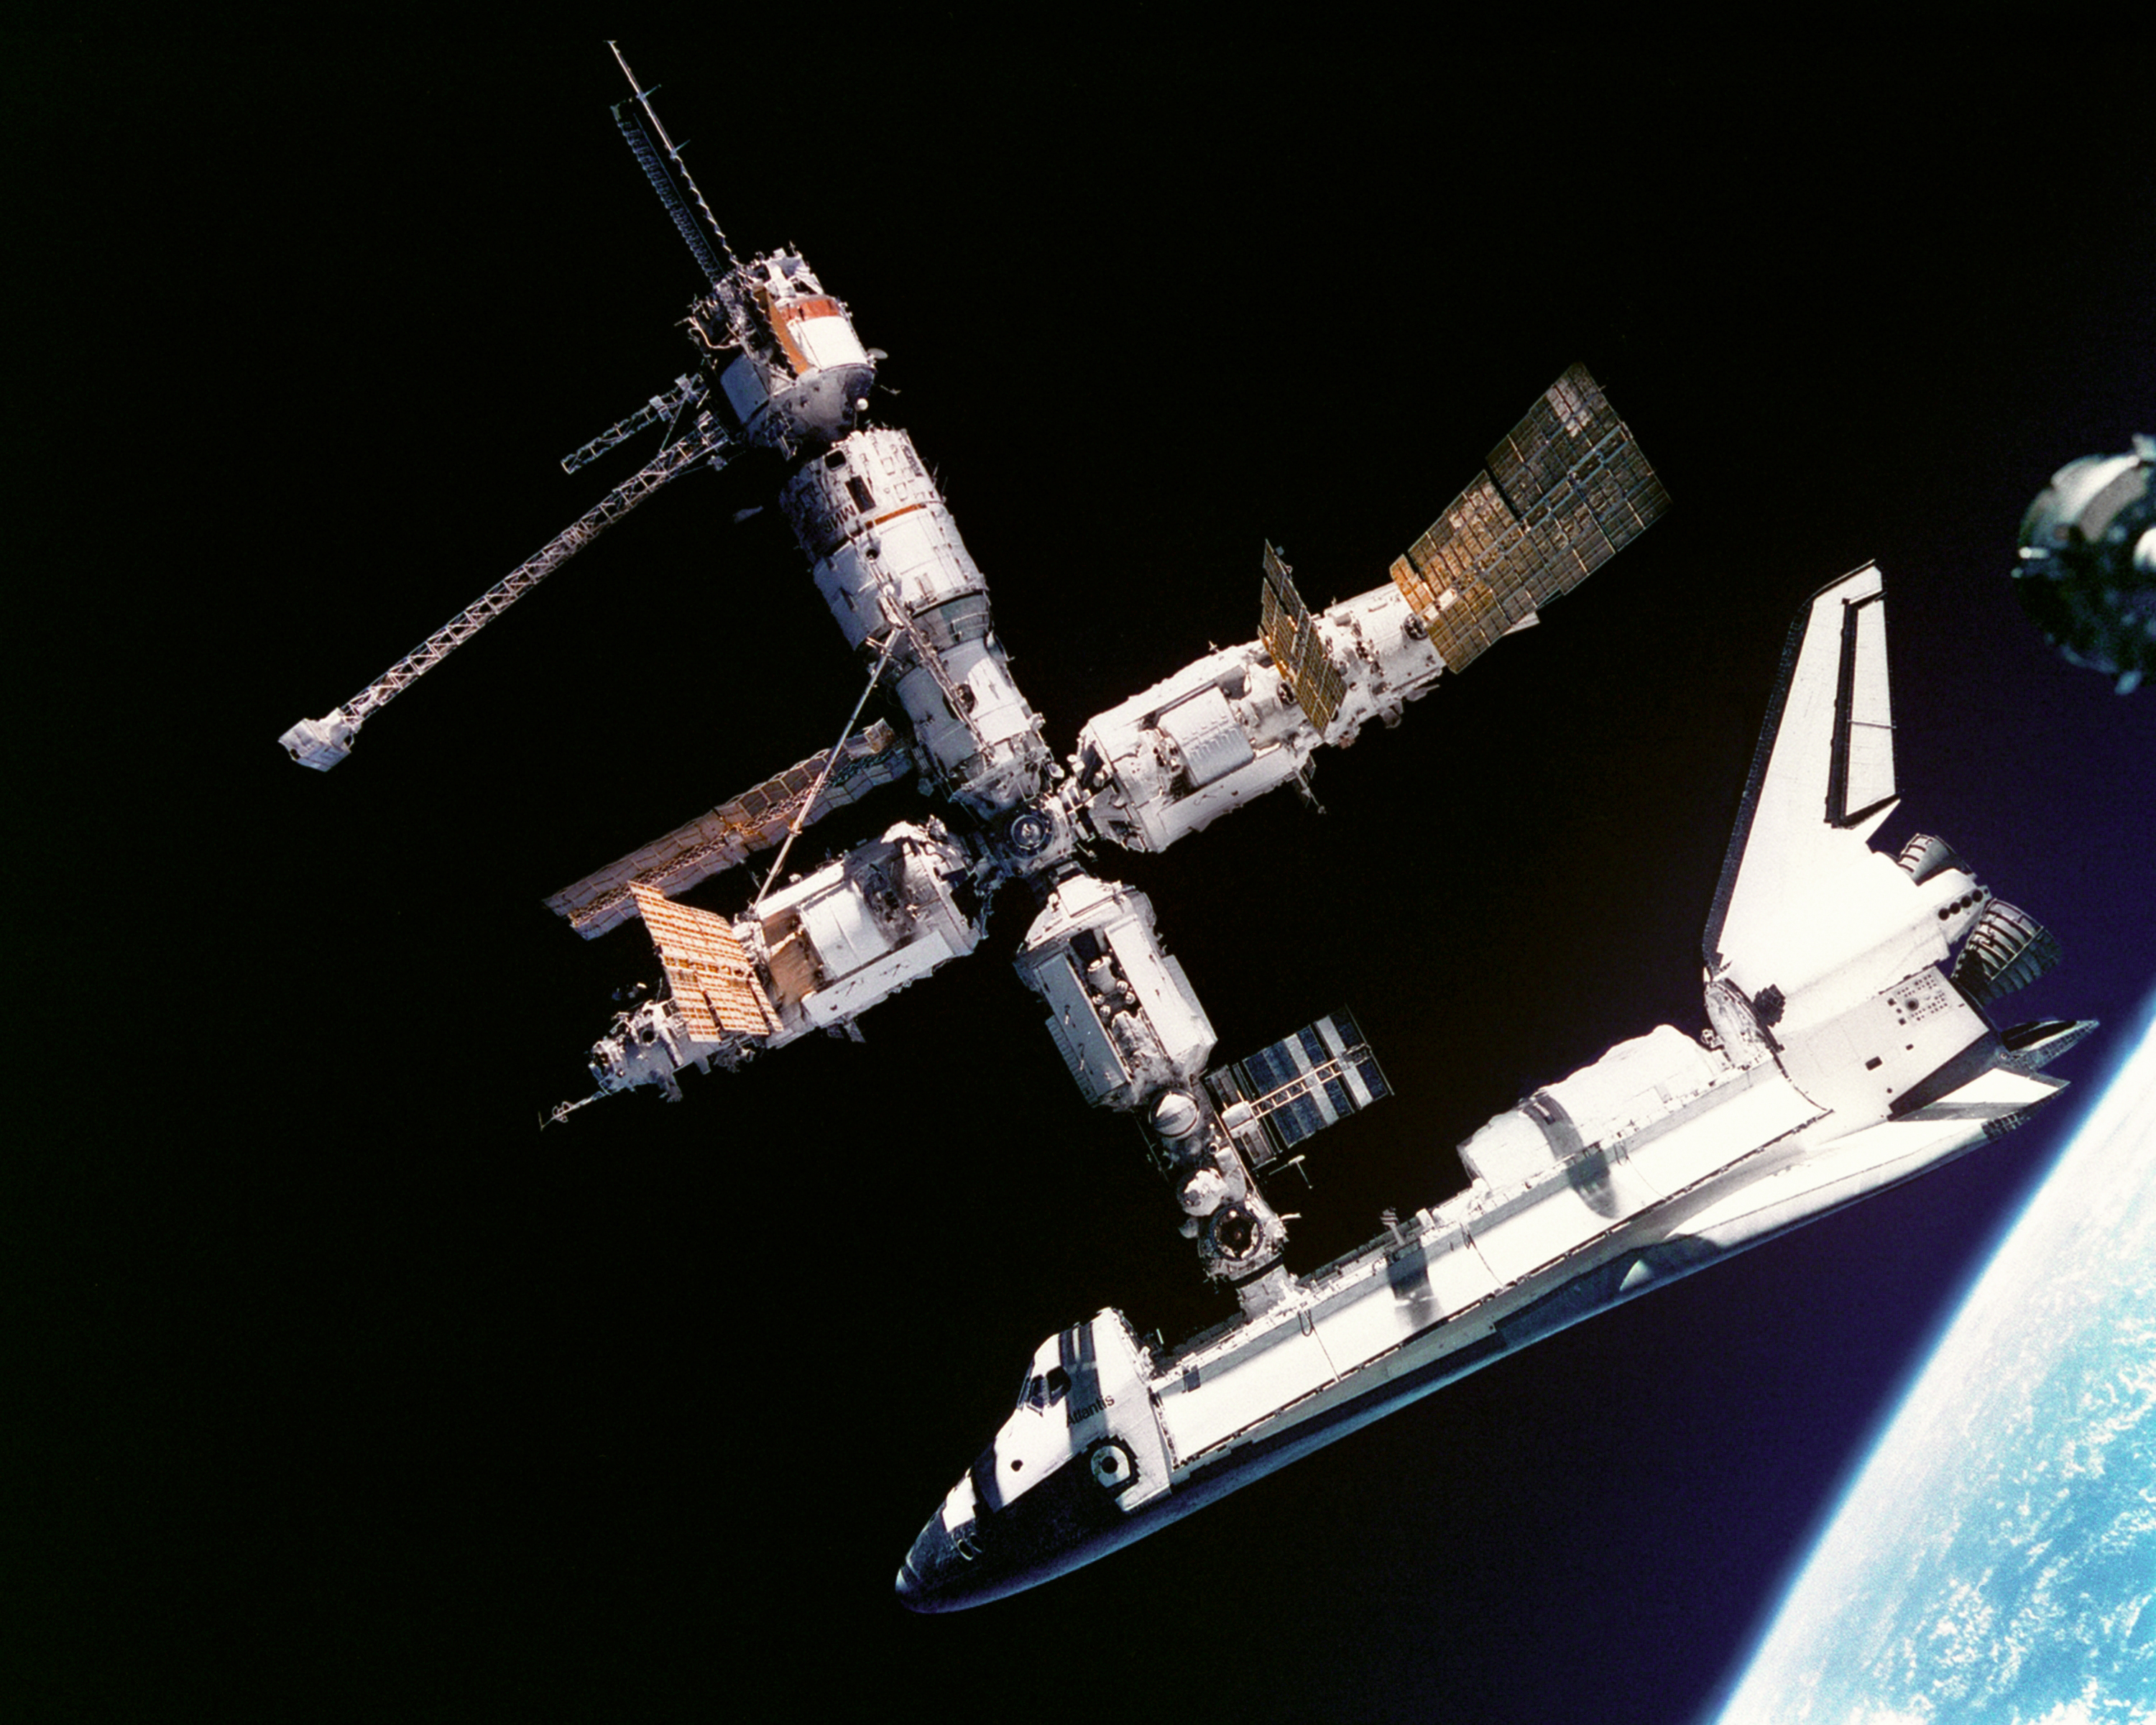 nasa first space mission - photo #27